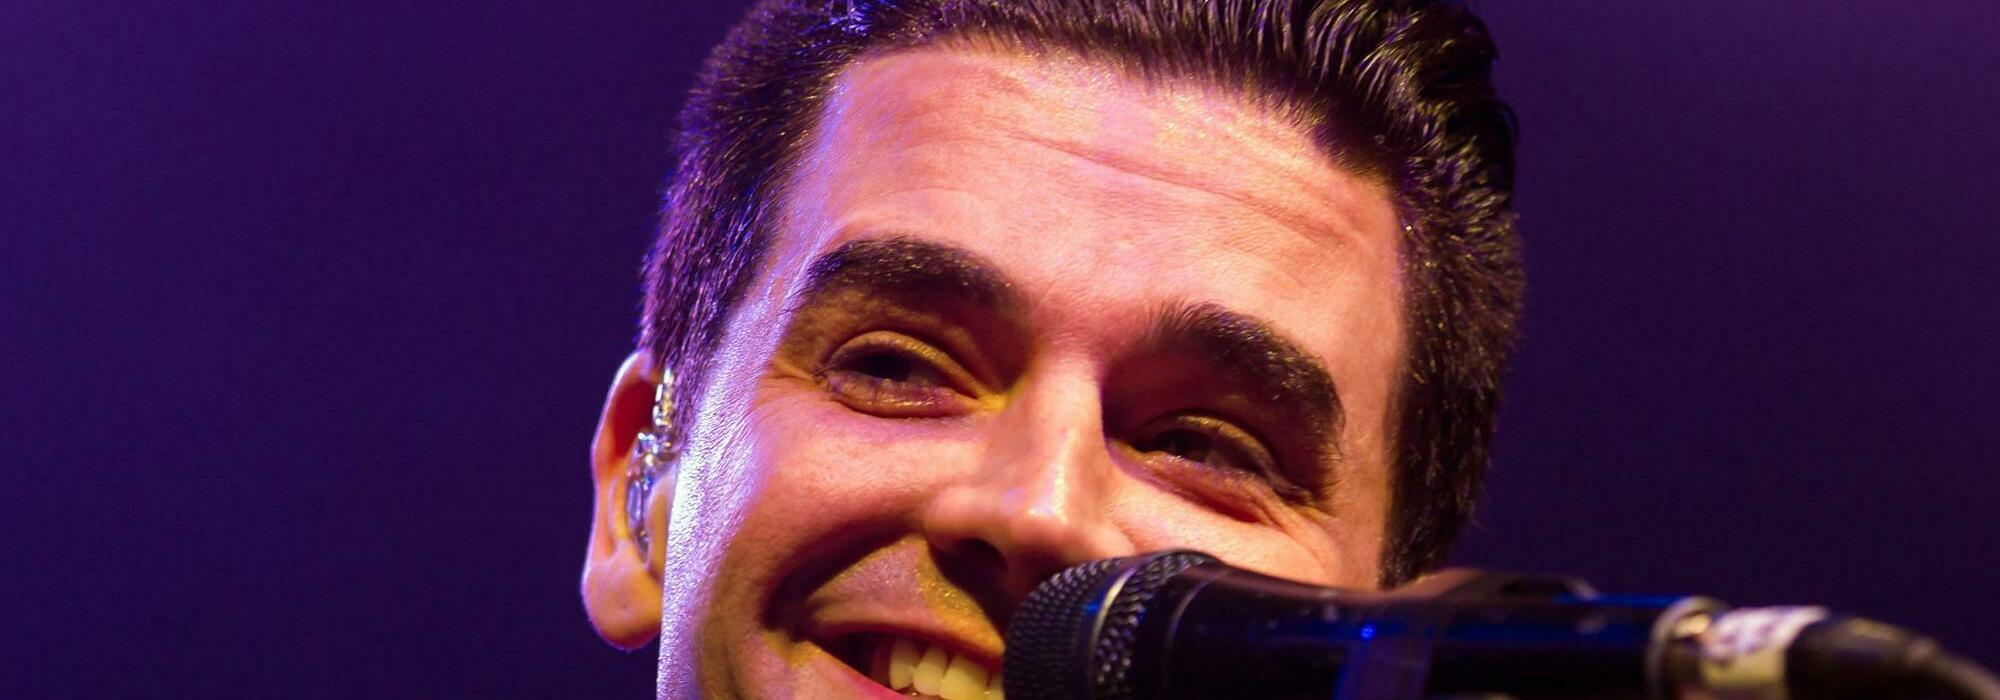 A Dashboard Confessional live event